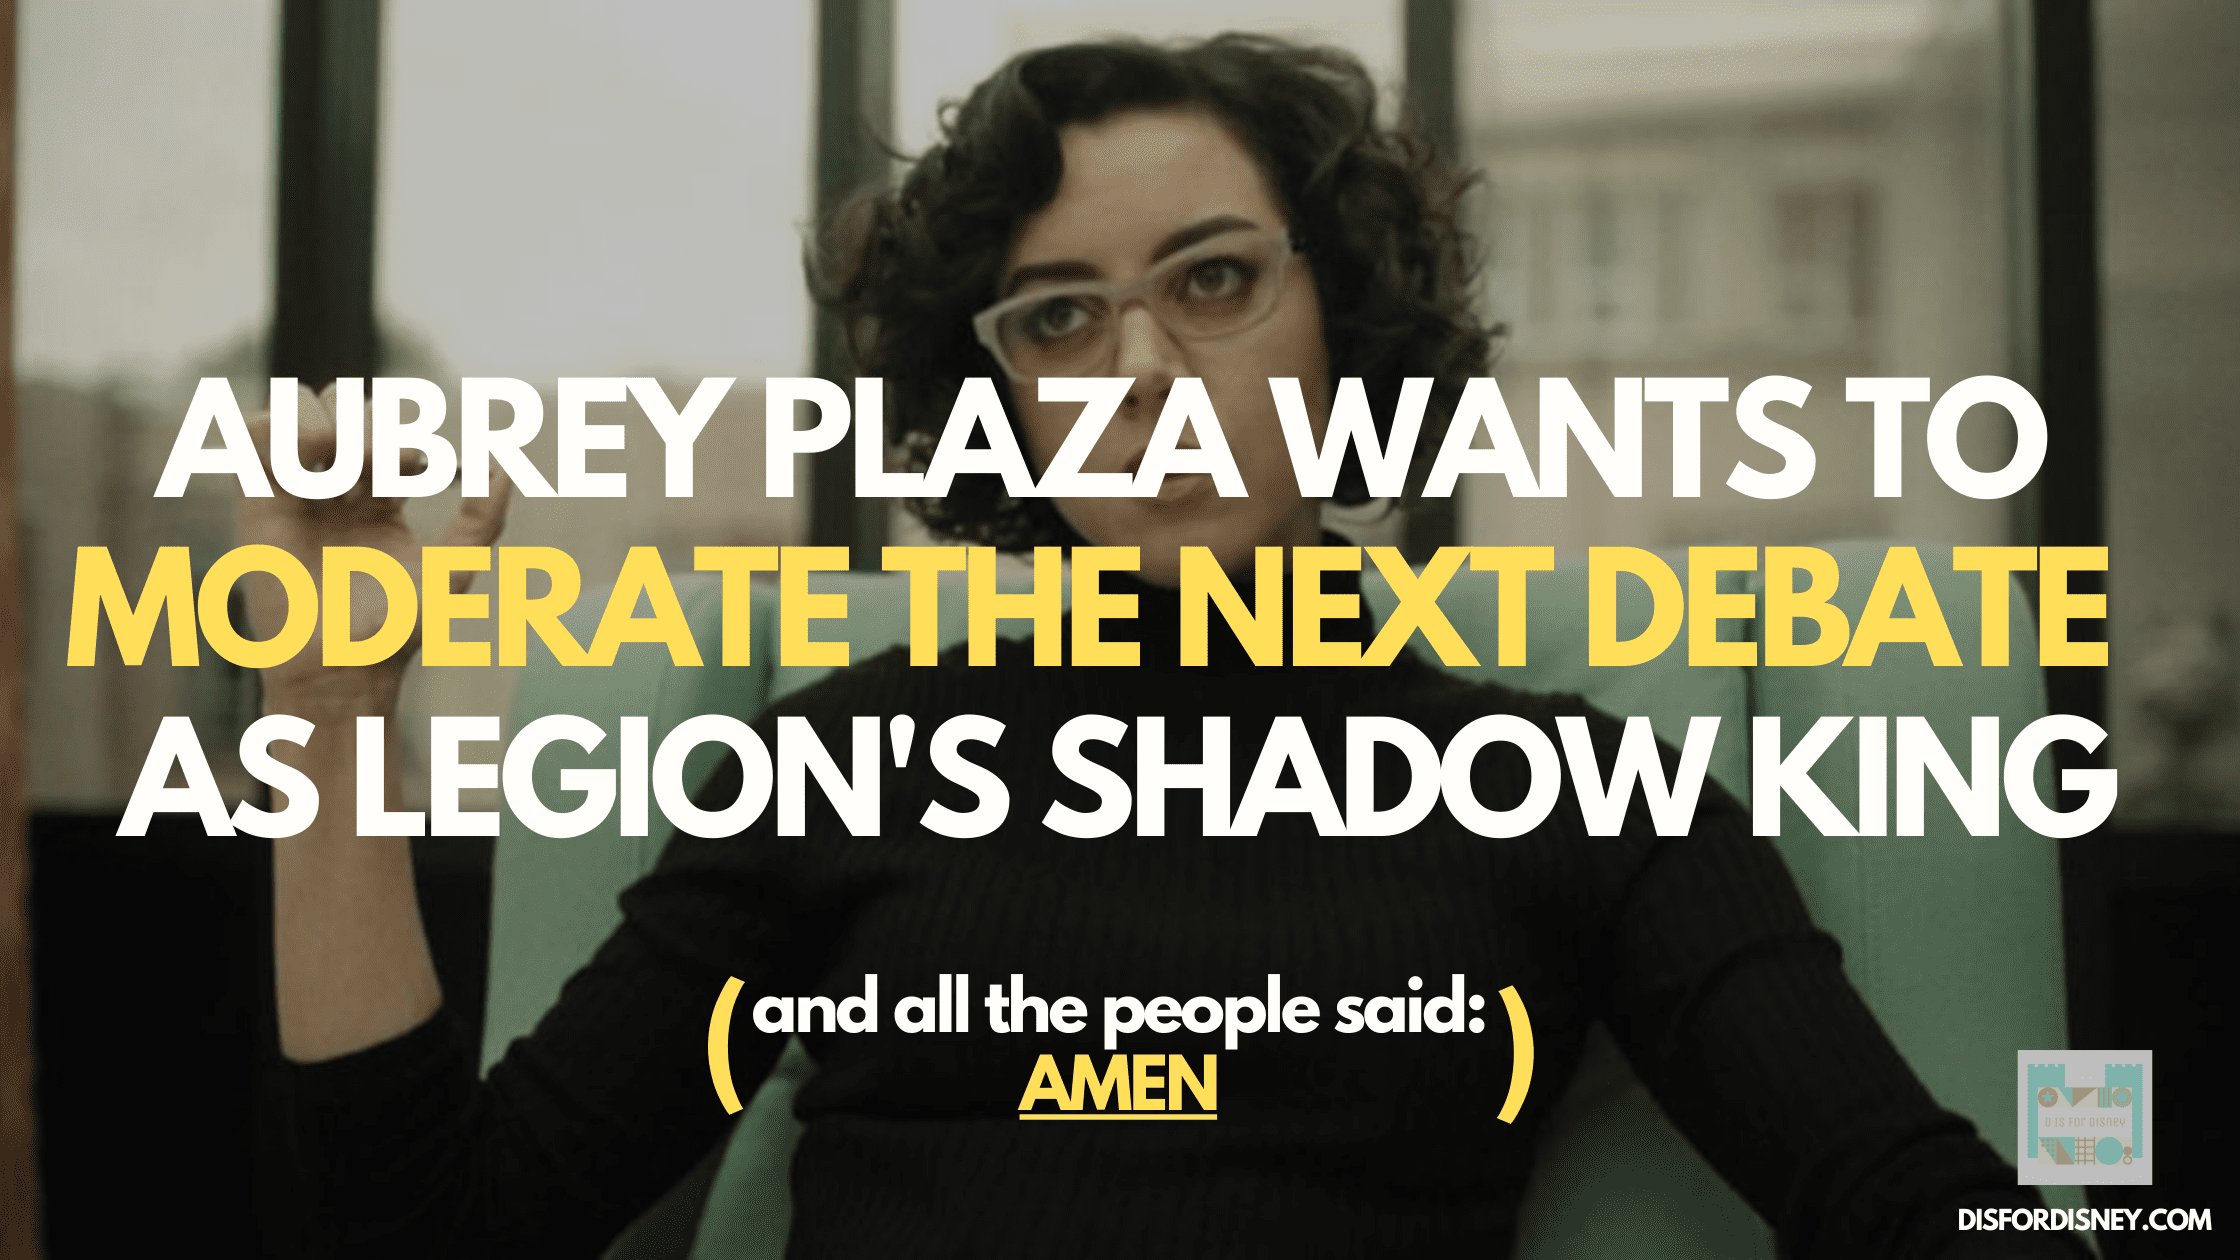 Aubrey Plaza, Marvel's Shadow King, Wants to Moderate Next Debate